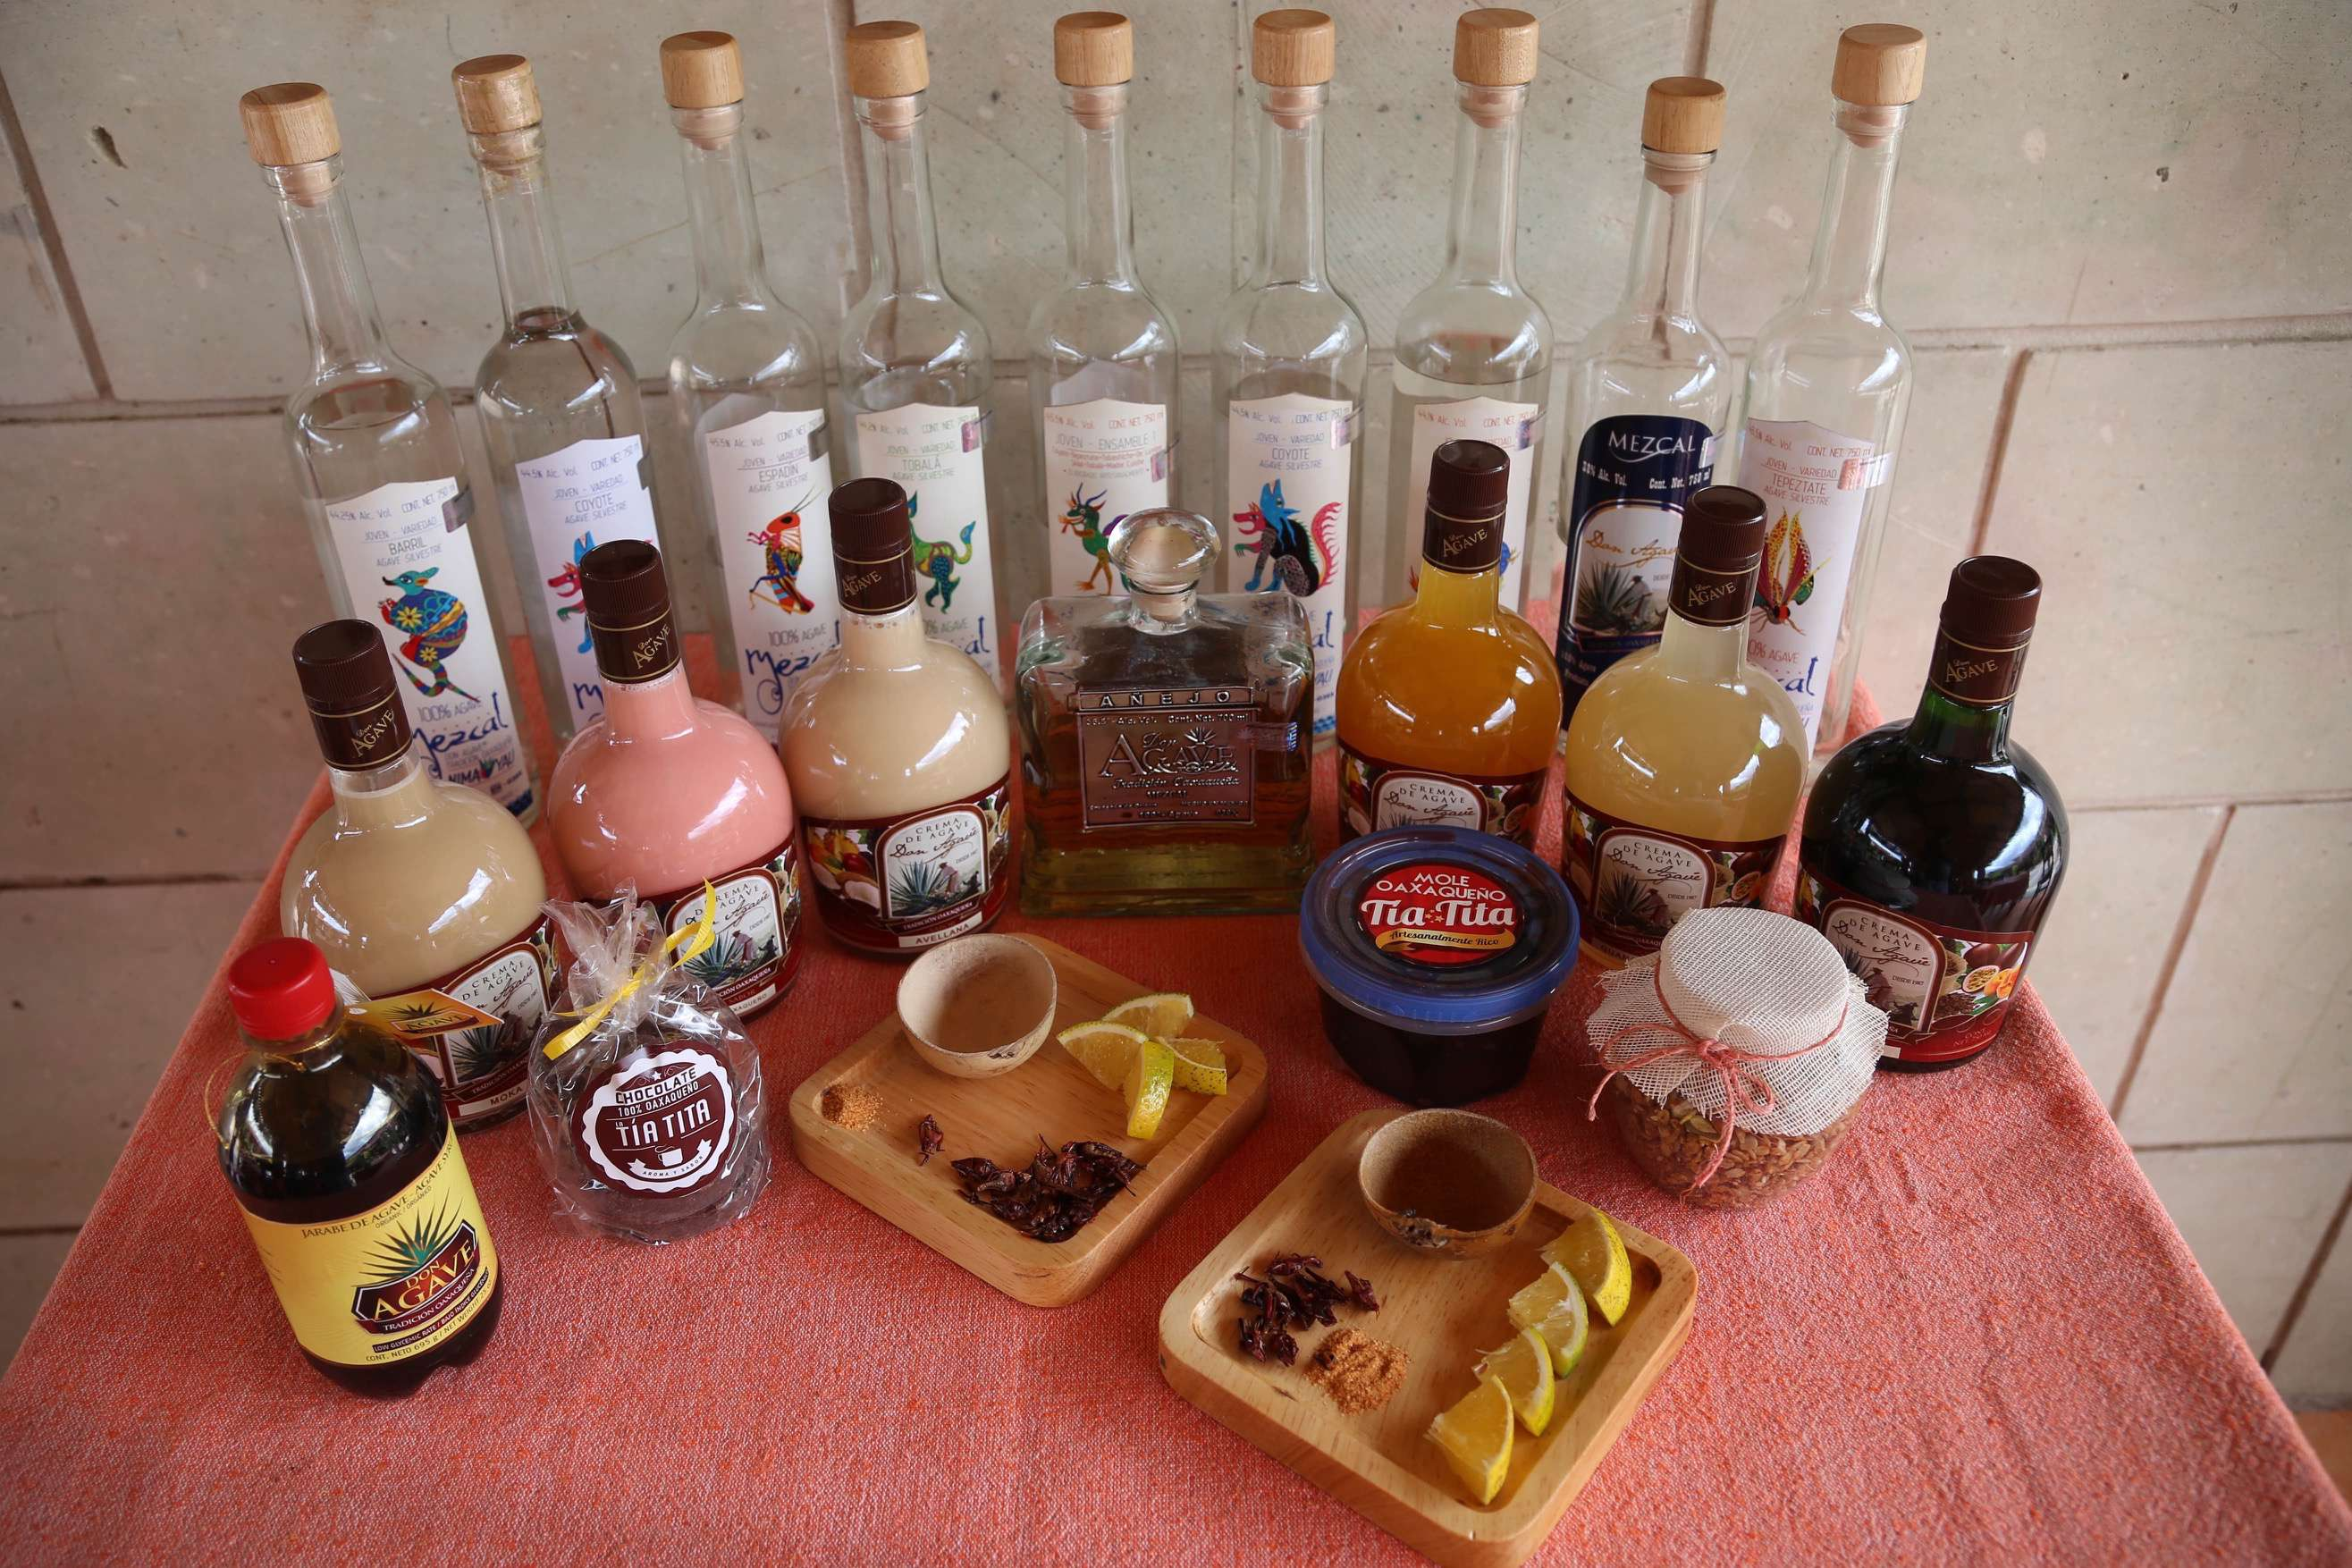 Don Agave mezcal produces some outstanding hand-crafted mezcals outside of Oaxaca, Oaxaca, Mexico.